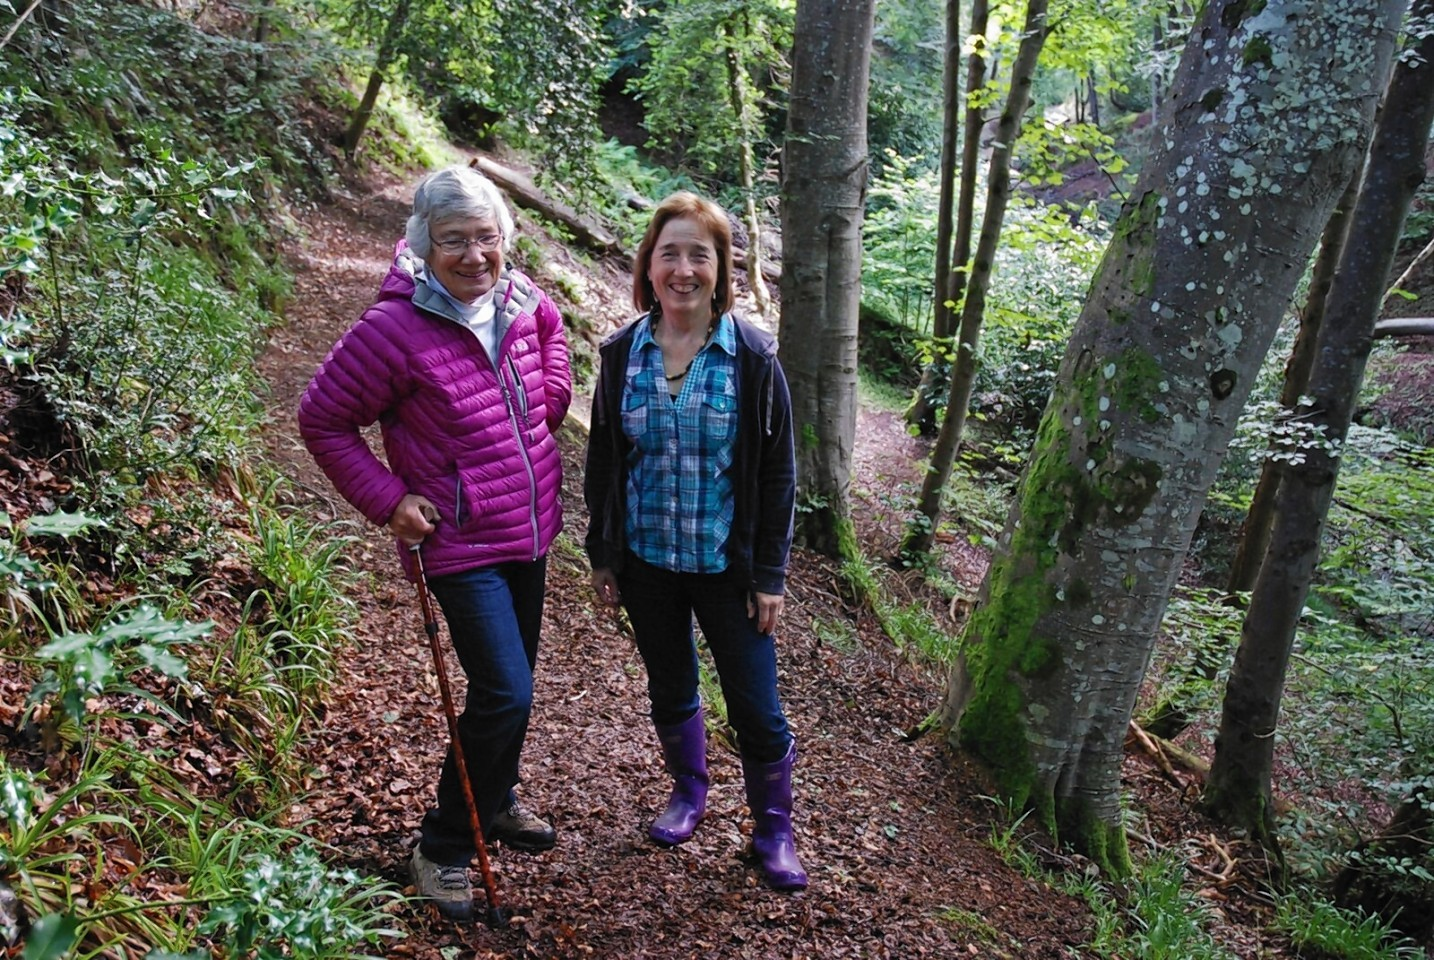 Aithne Barron, owner of the woodland, and Gina O'Brien, chairman of the trustees eager to bring the woodland into community ownership.